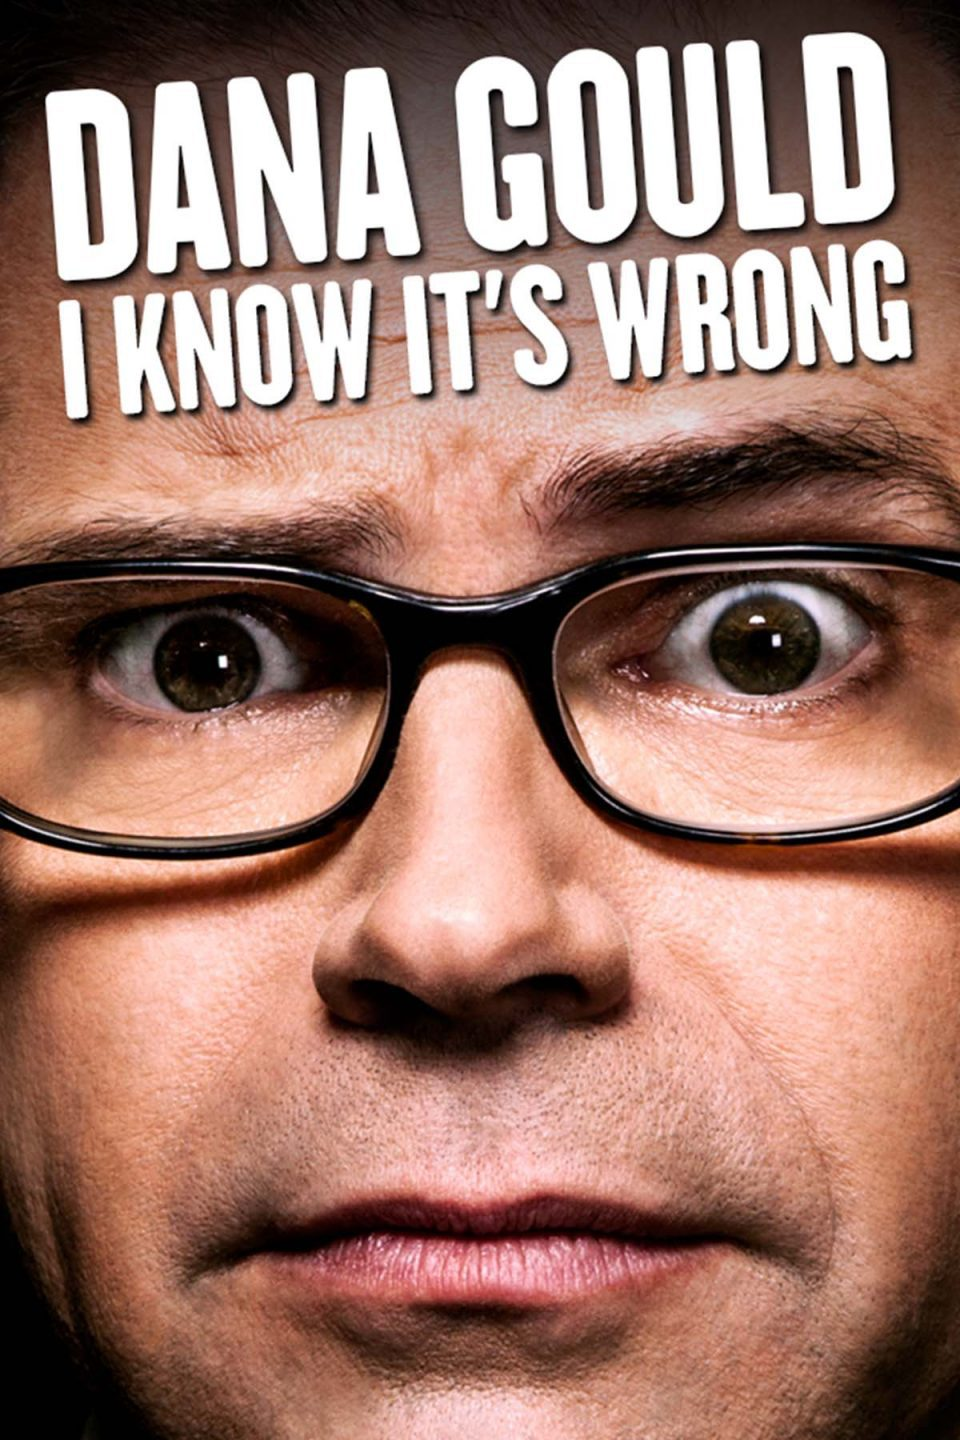 DanaGould IKnowItsWrong Premiere 1400